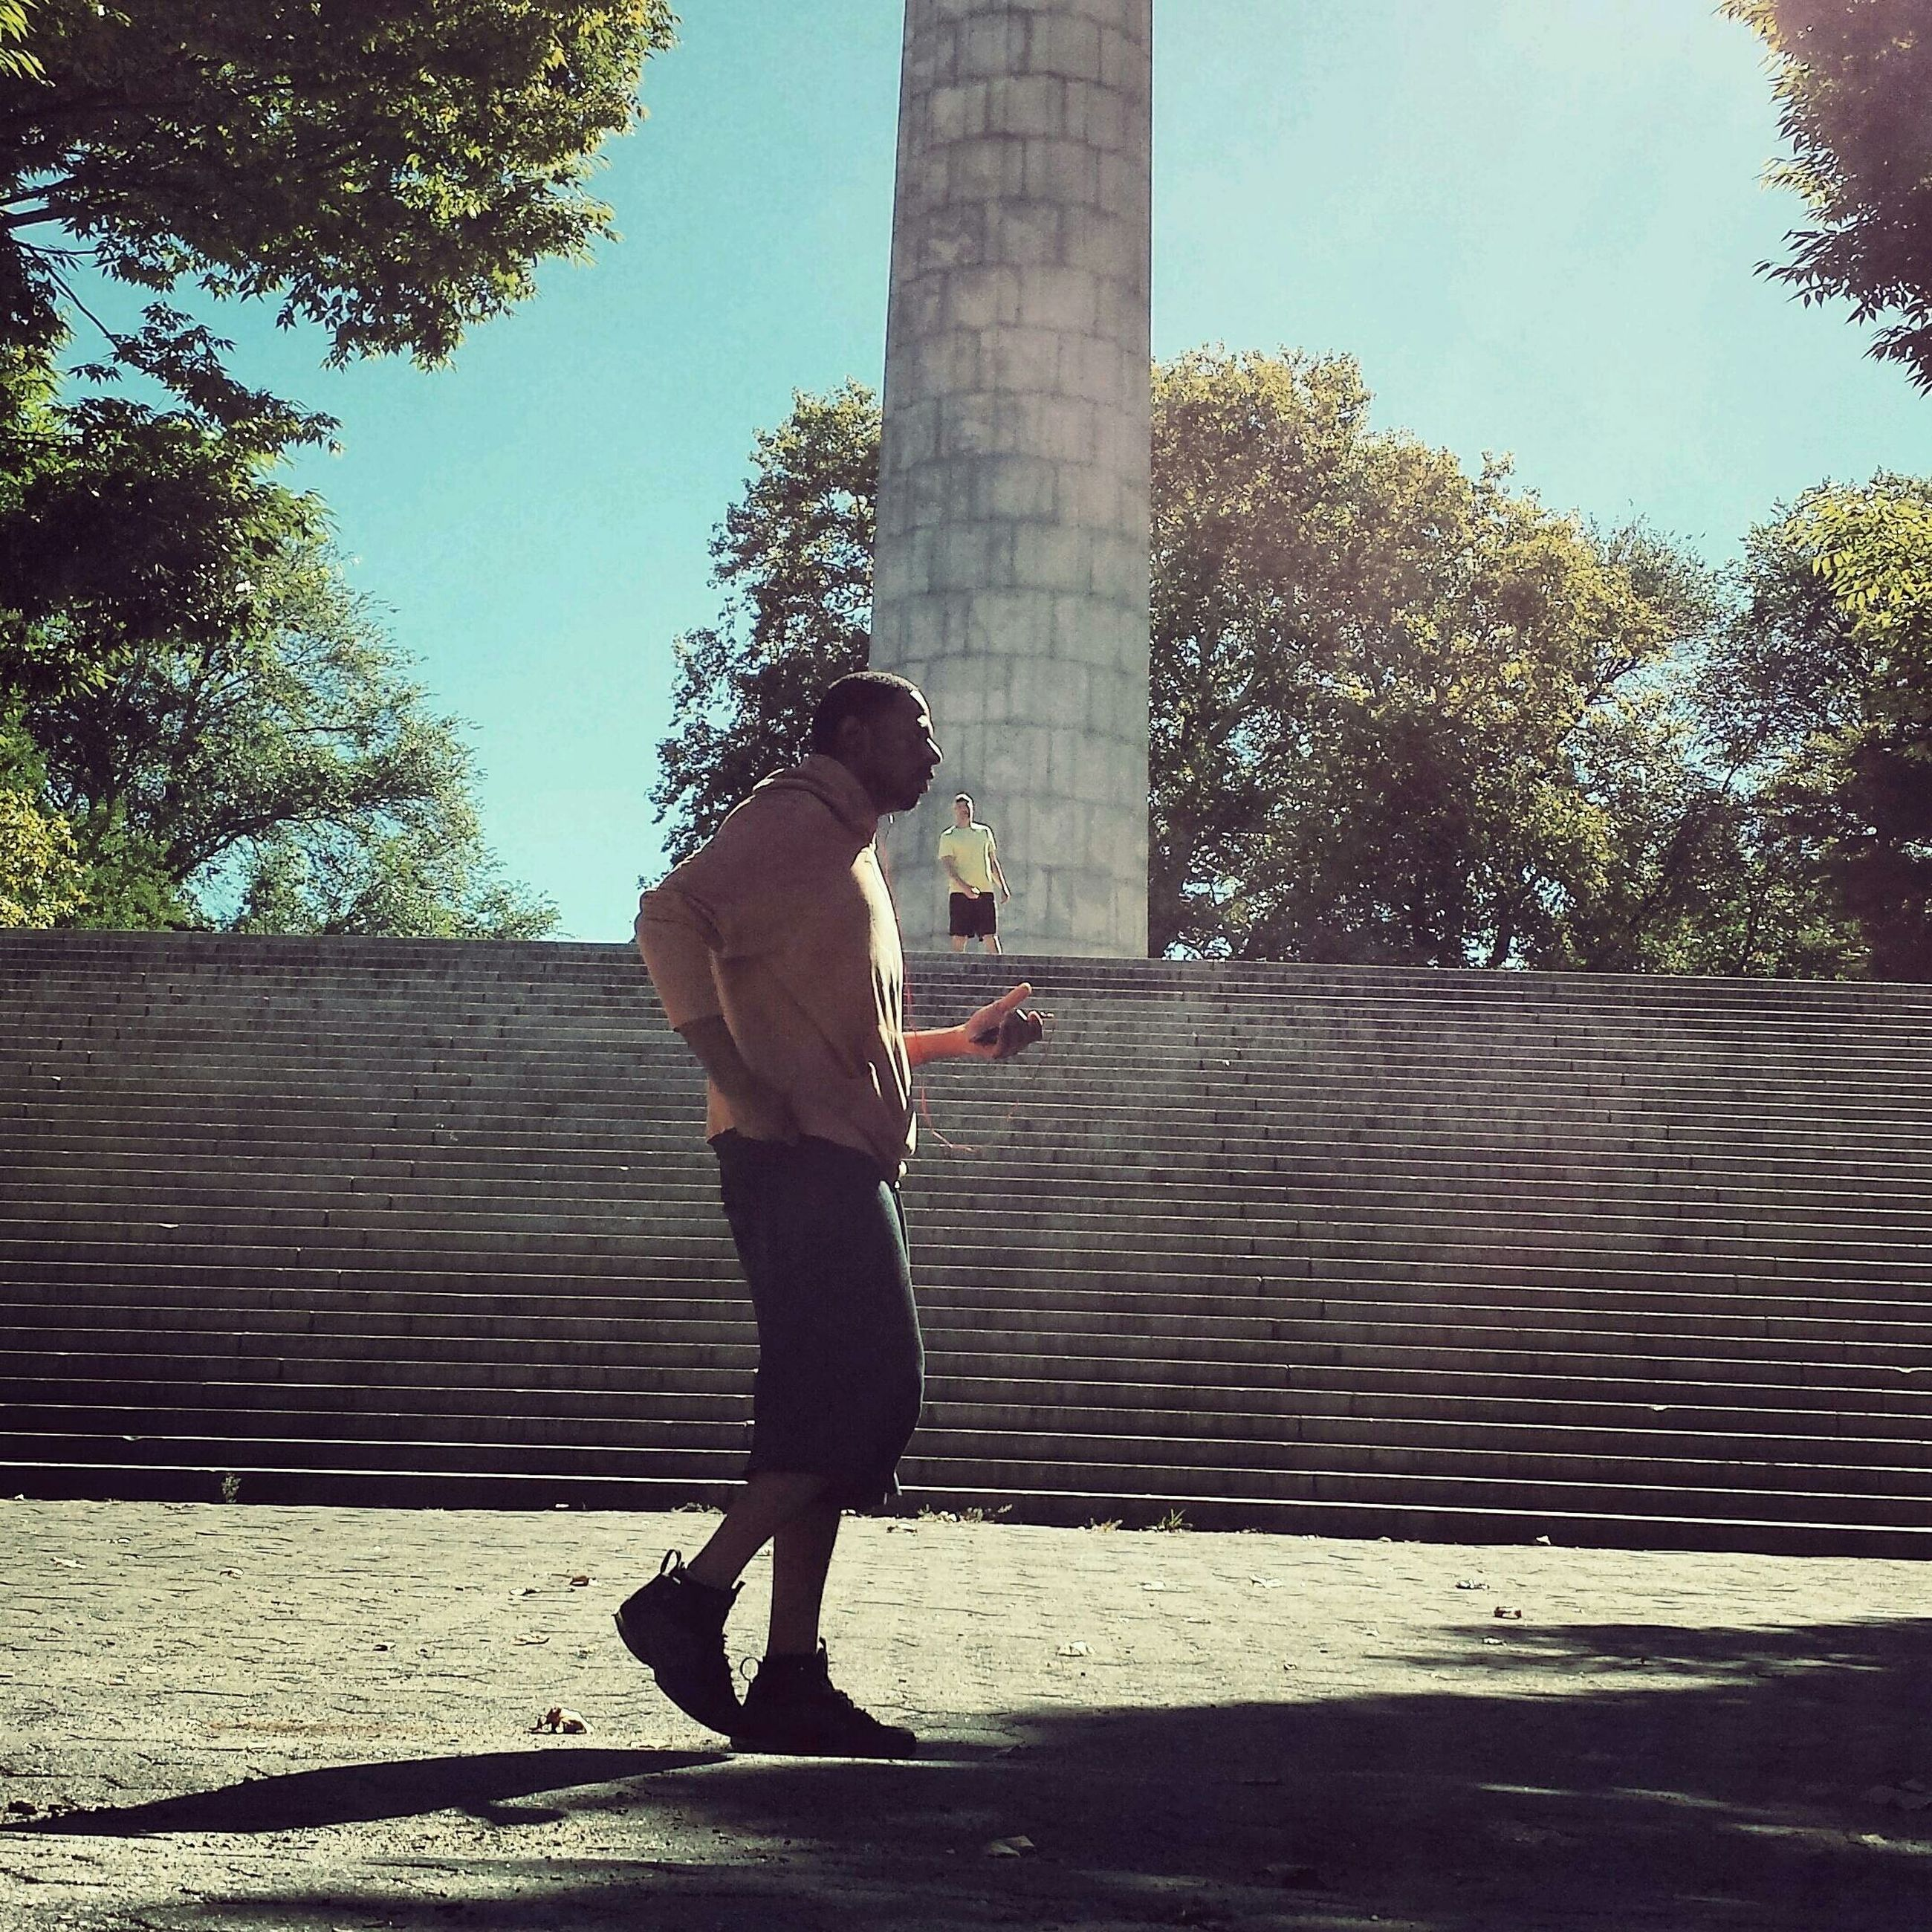 full length, lifestyles, tree, casual clothing, leisure activity, sunlight, walking, shadow, person, standing, clear sky, young adult, rear view, day, childhood, street, built structure, outdoors